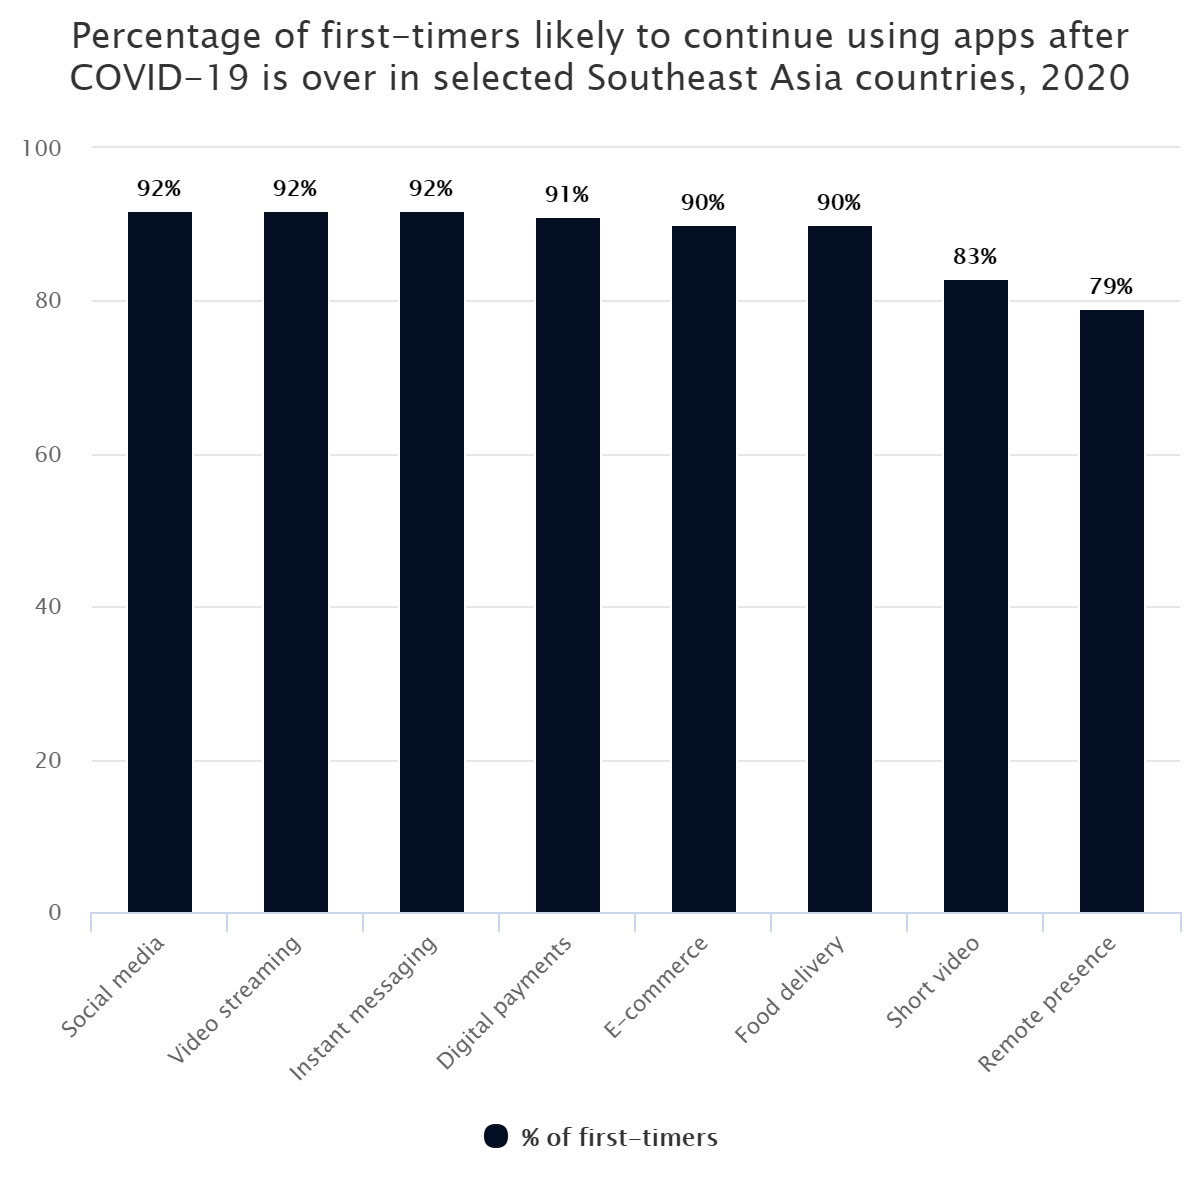 Percentage of first-timers likely to continue using apps after COVID-19 is over in selected Southeast Asia countries, 2020